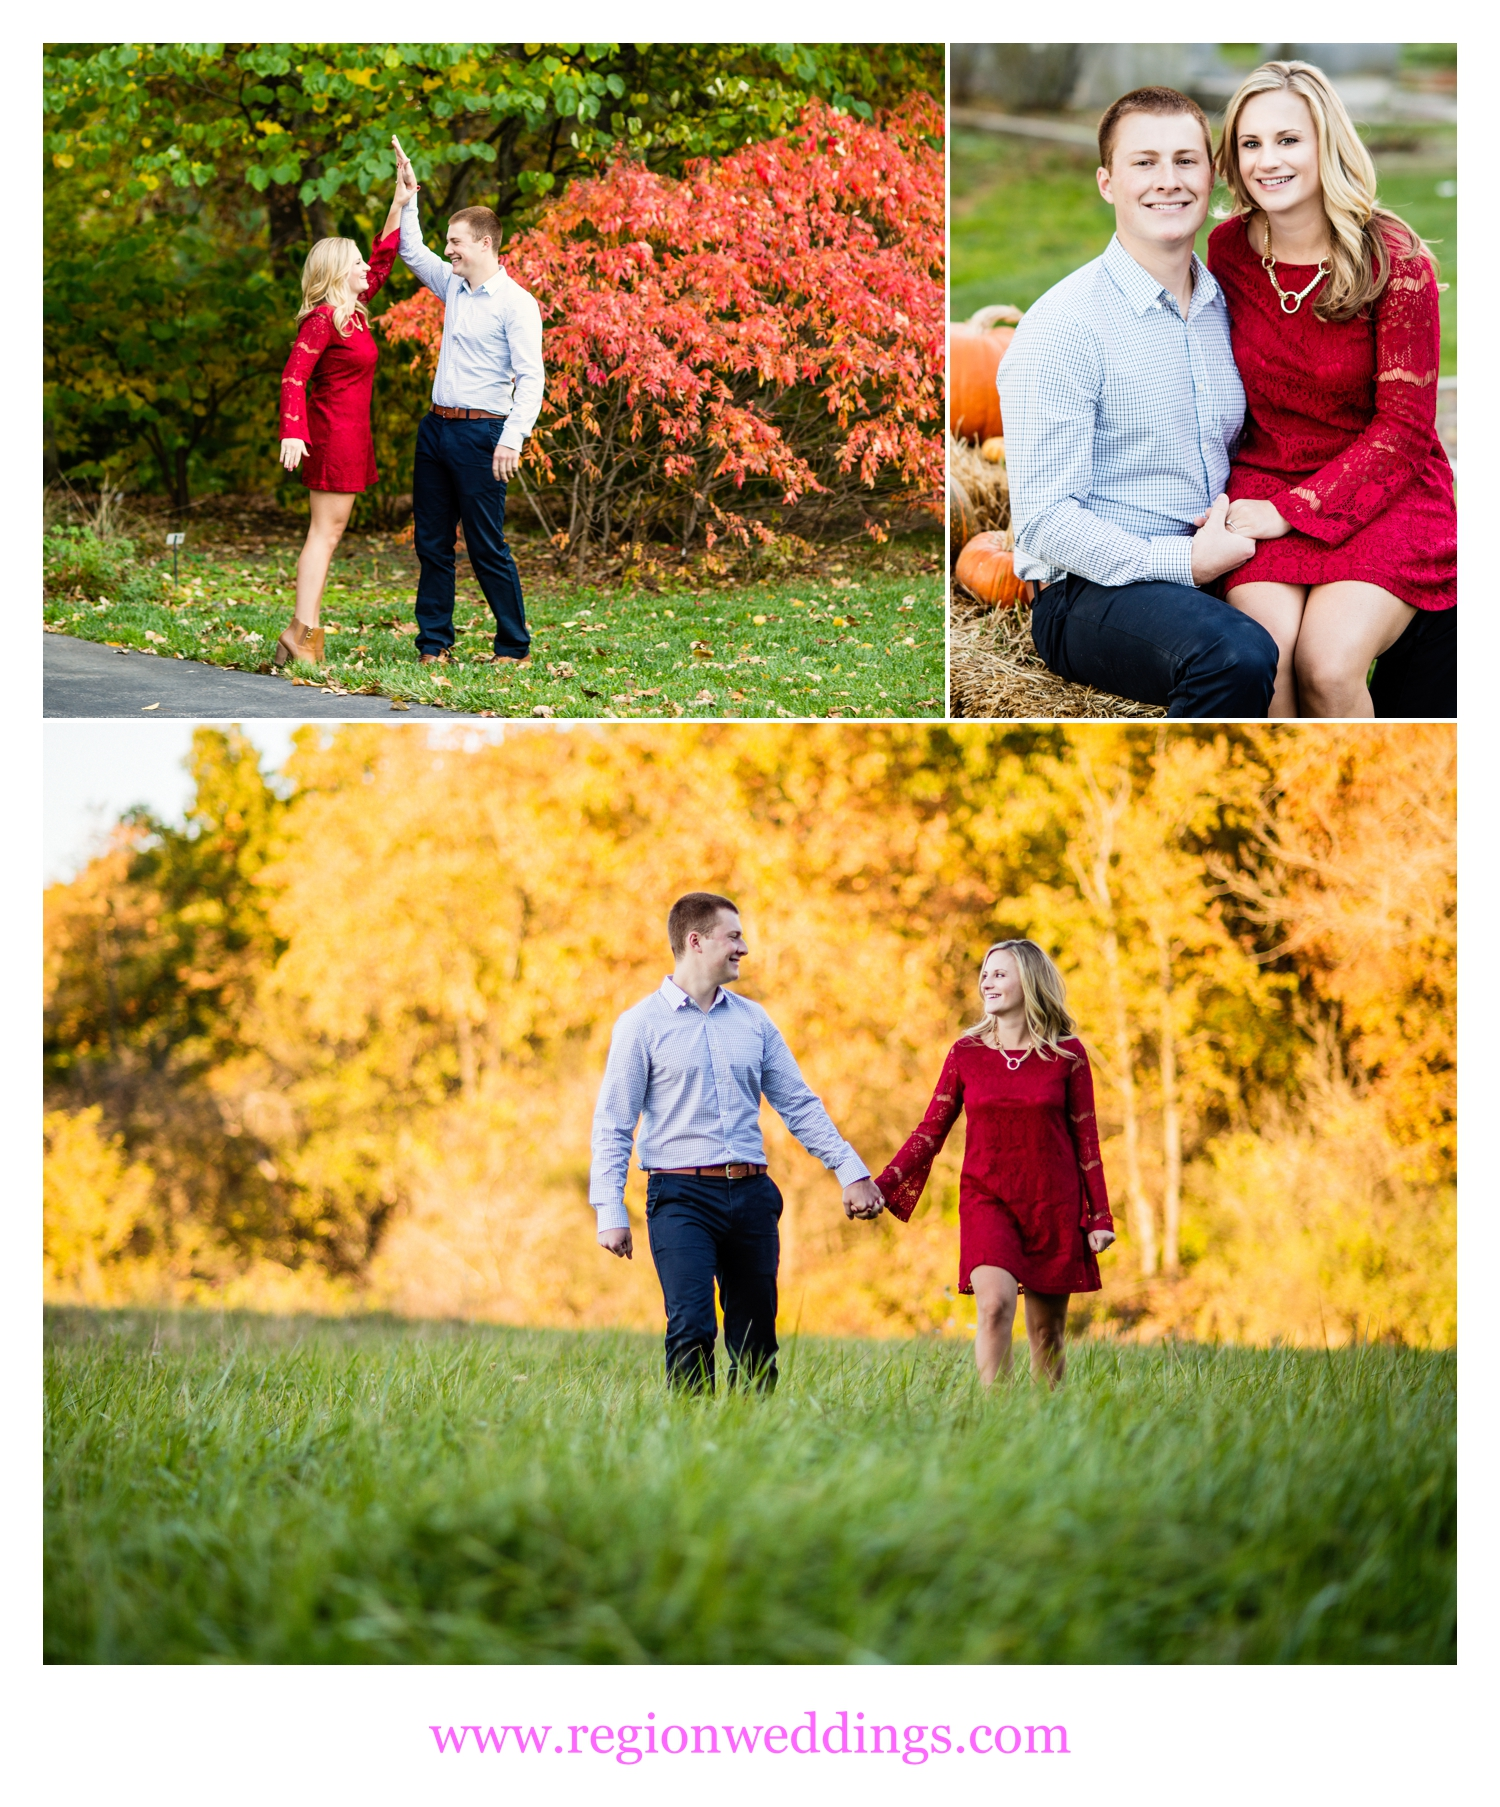 An Autumn engagement session at Taltree Aboretum.